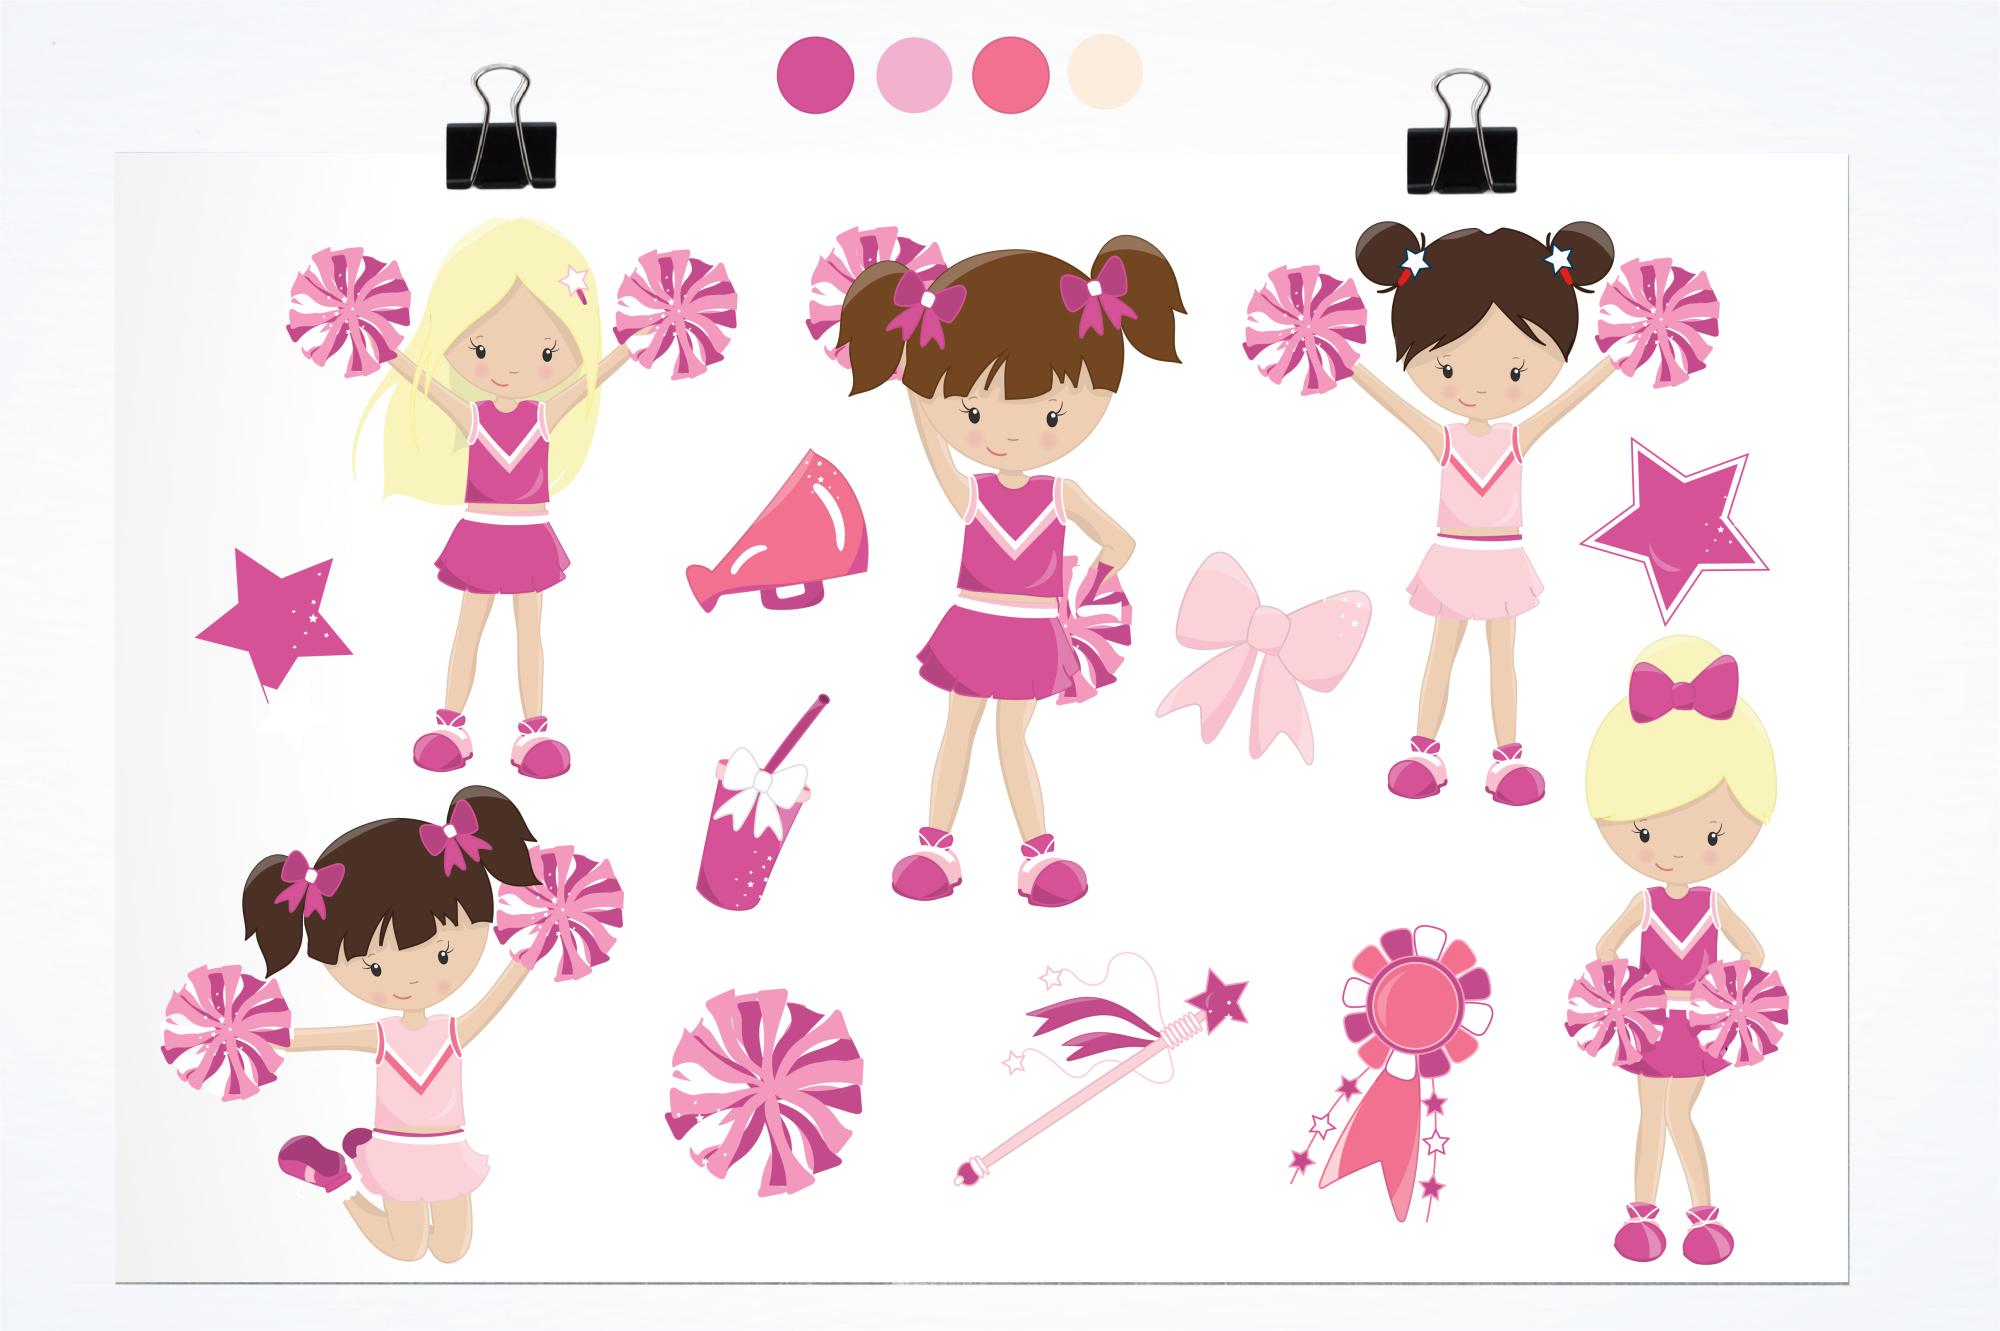 Cheerleaders graphics and illustrations example image 2